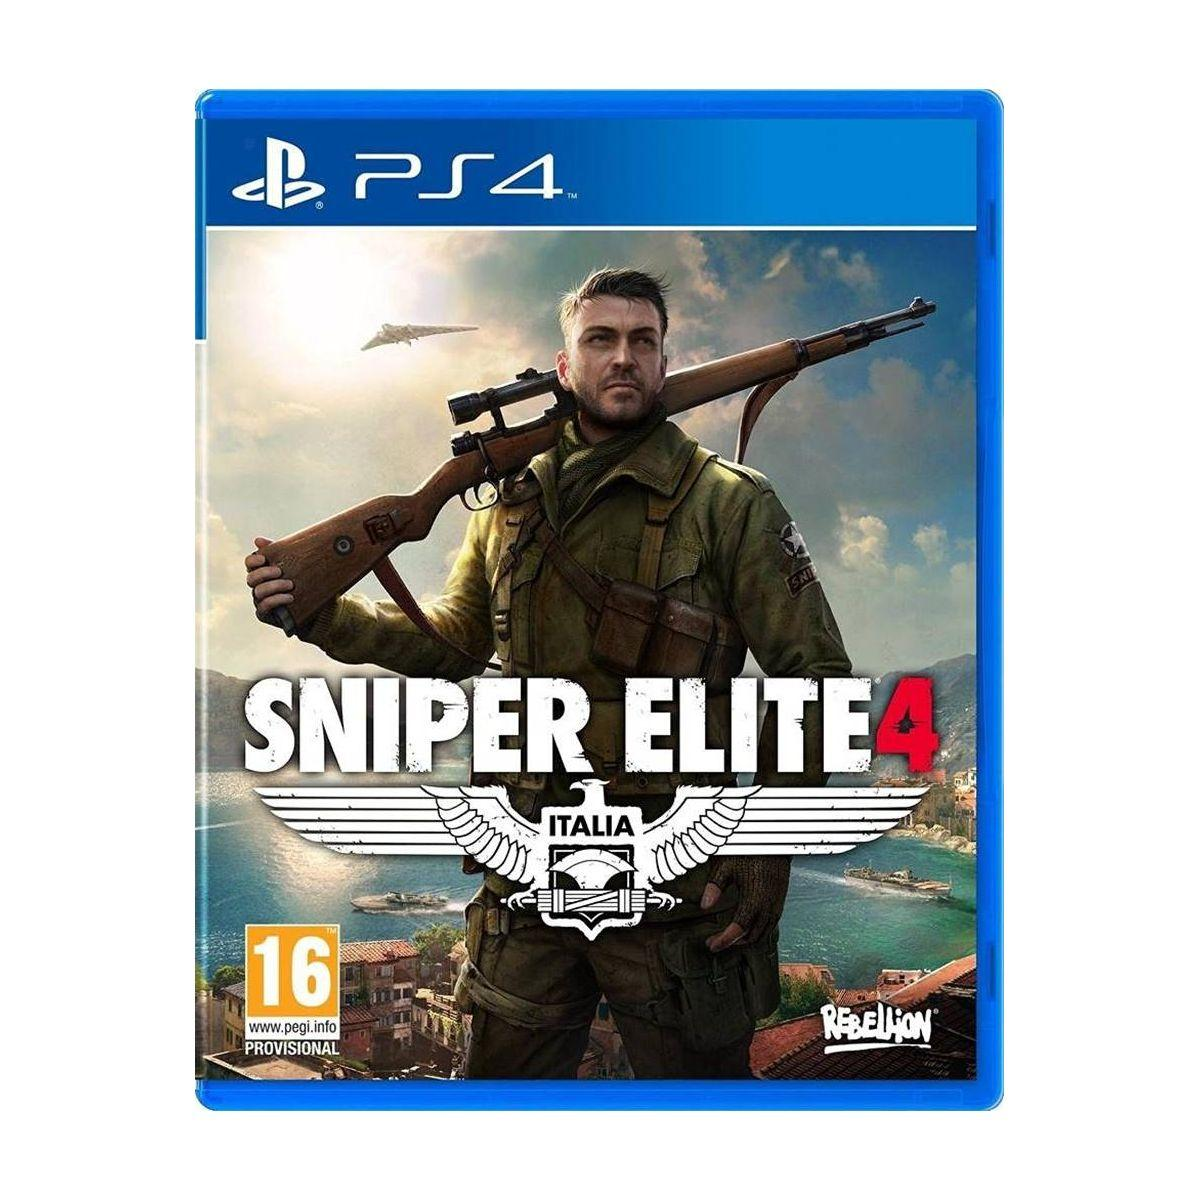 Jeu ps4 just for games sniper elite 4 - 2% de remise immédiate avec le code : cool2 (photo)